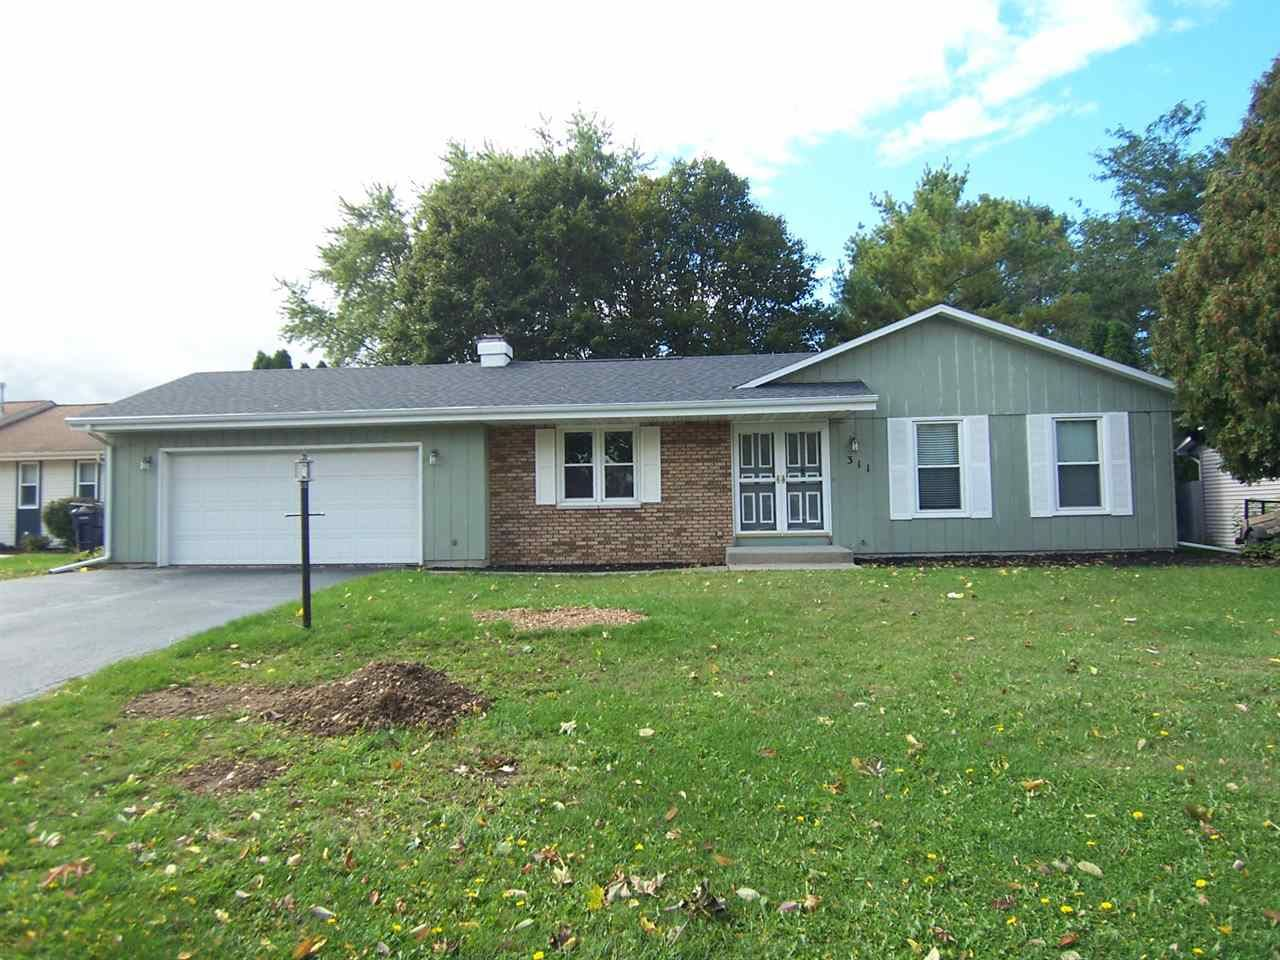 311 Exeter Dr., Janesville, WI 53546 - #: 1894831